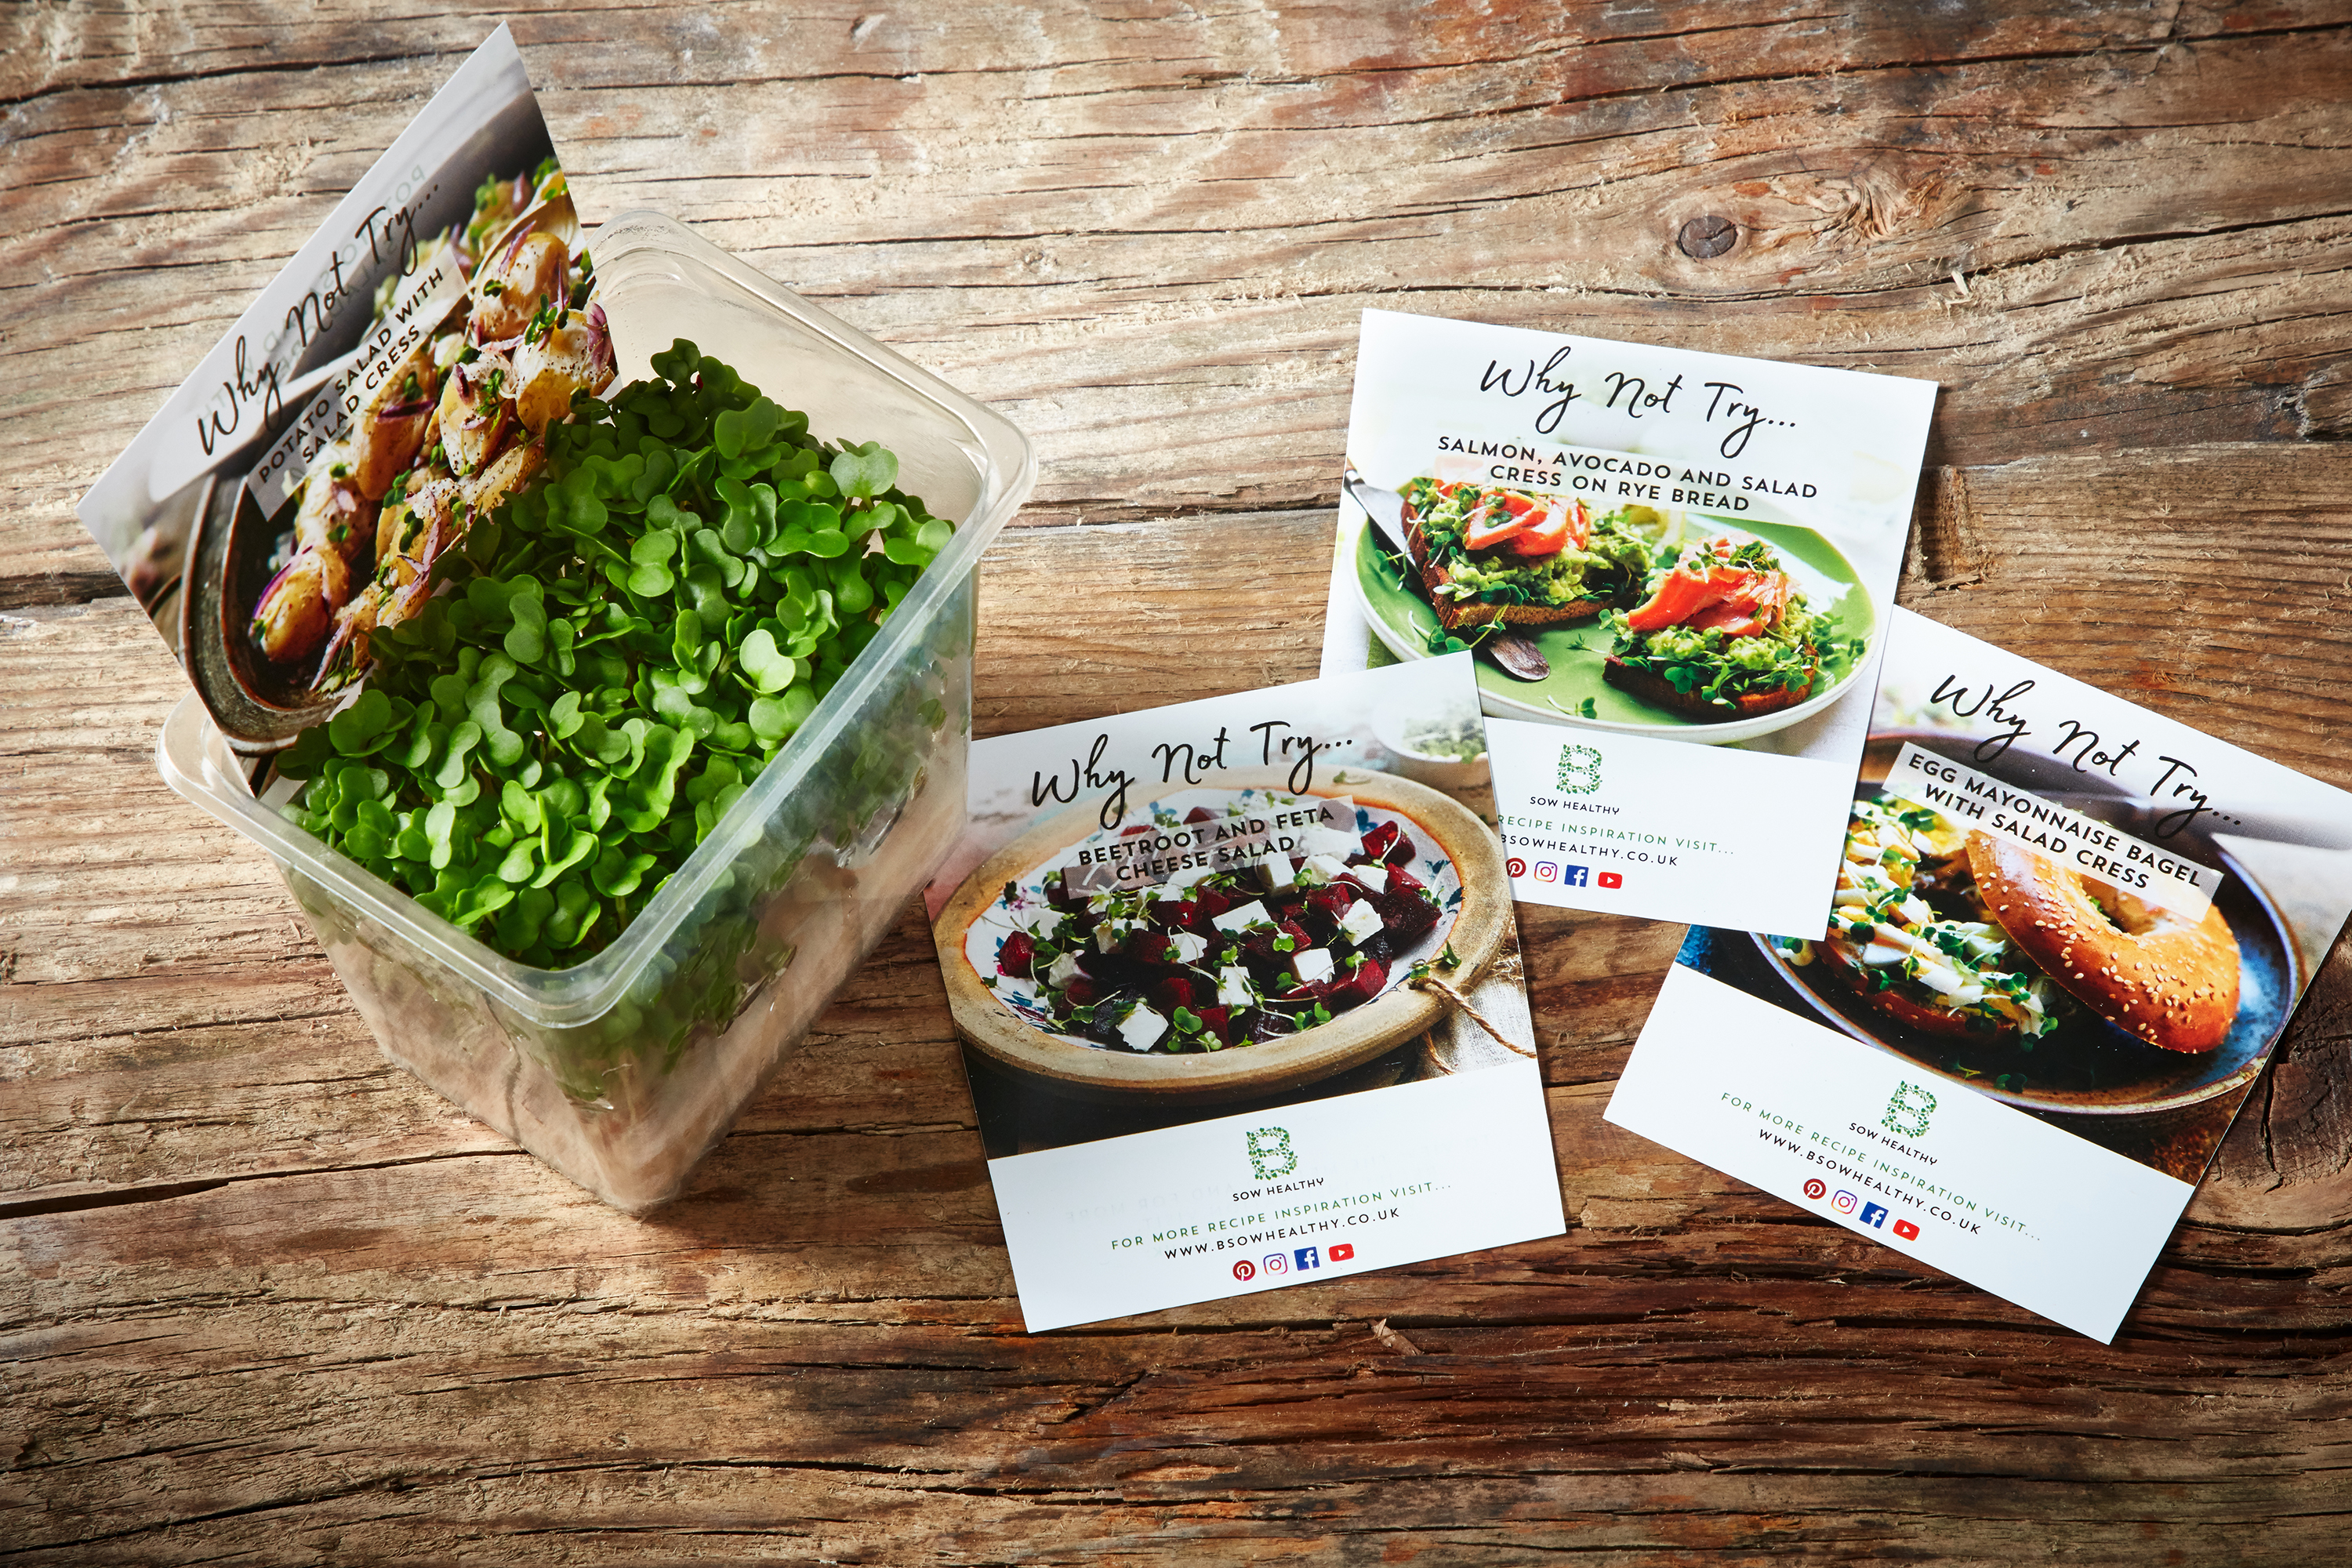 Salad cress recipe cards